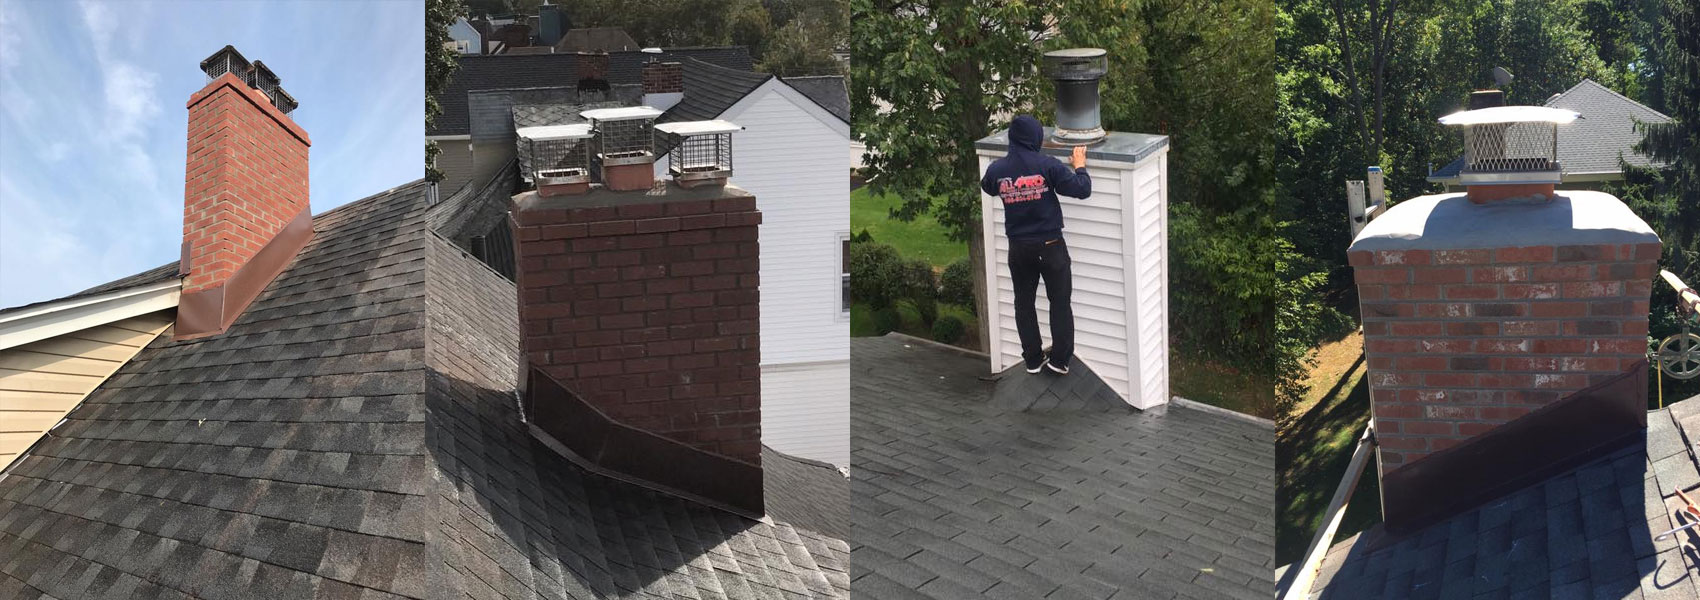 Chimney Repair Near Nutley NJ